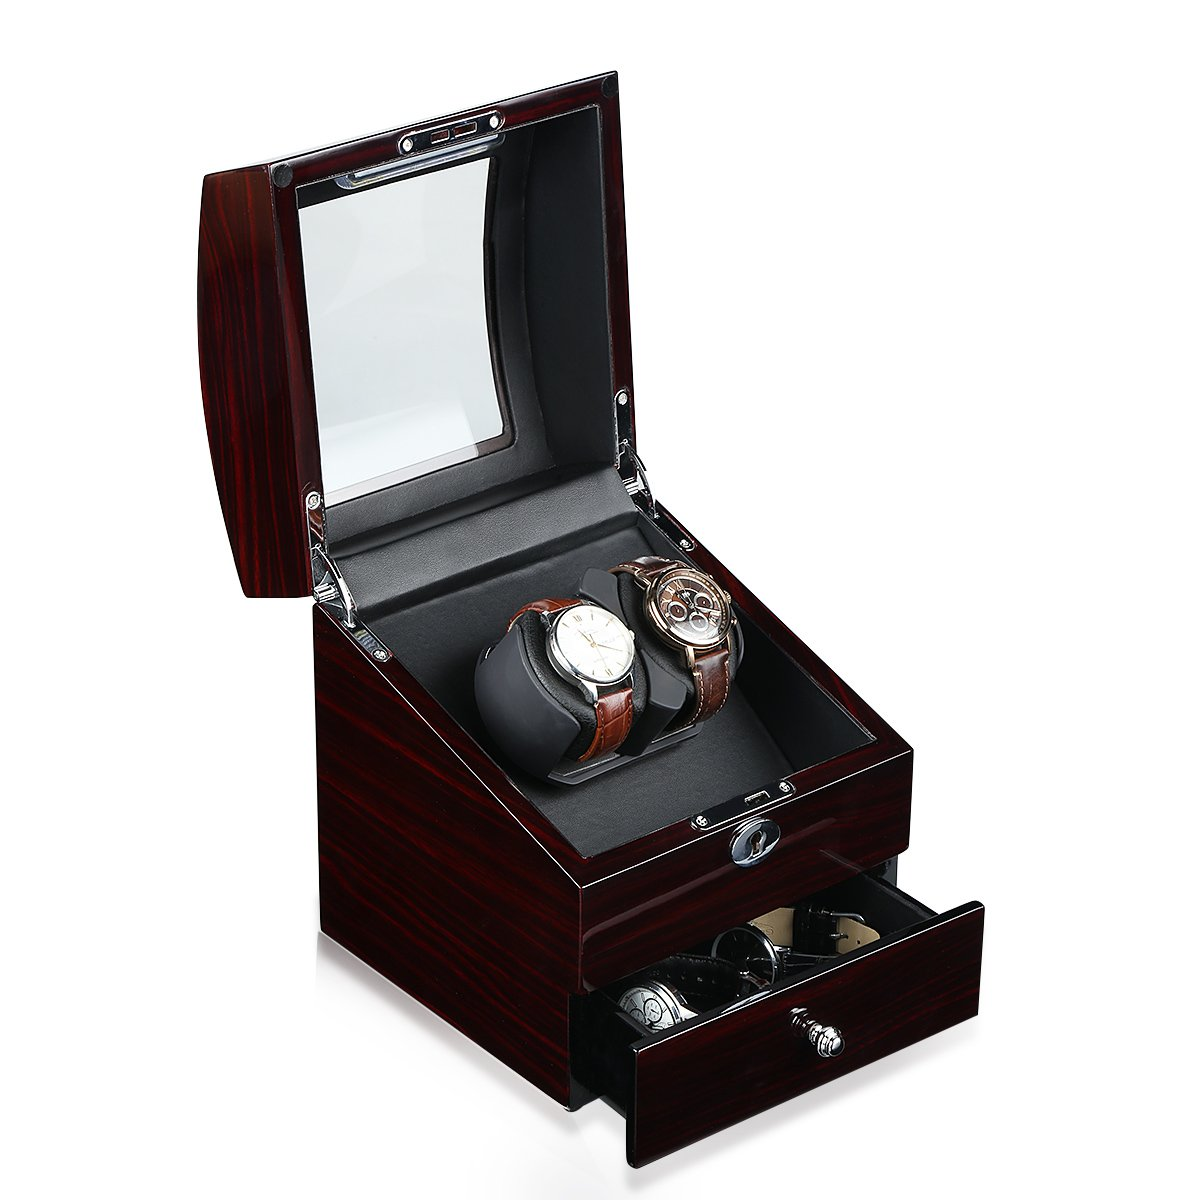 CRITIRON Luxury Automatic Dual Watch Winder with Drawer, Wood Rotating Watches Display Storage Case Box with Lock, Brown